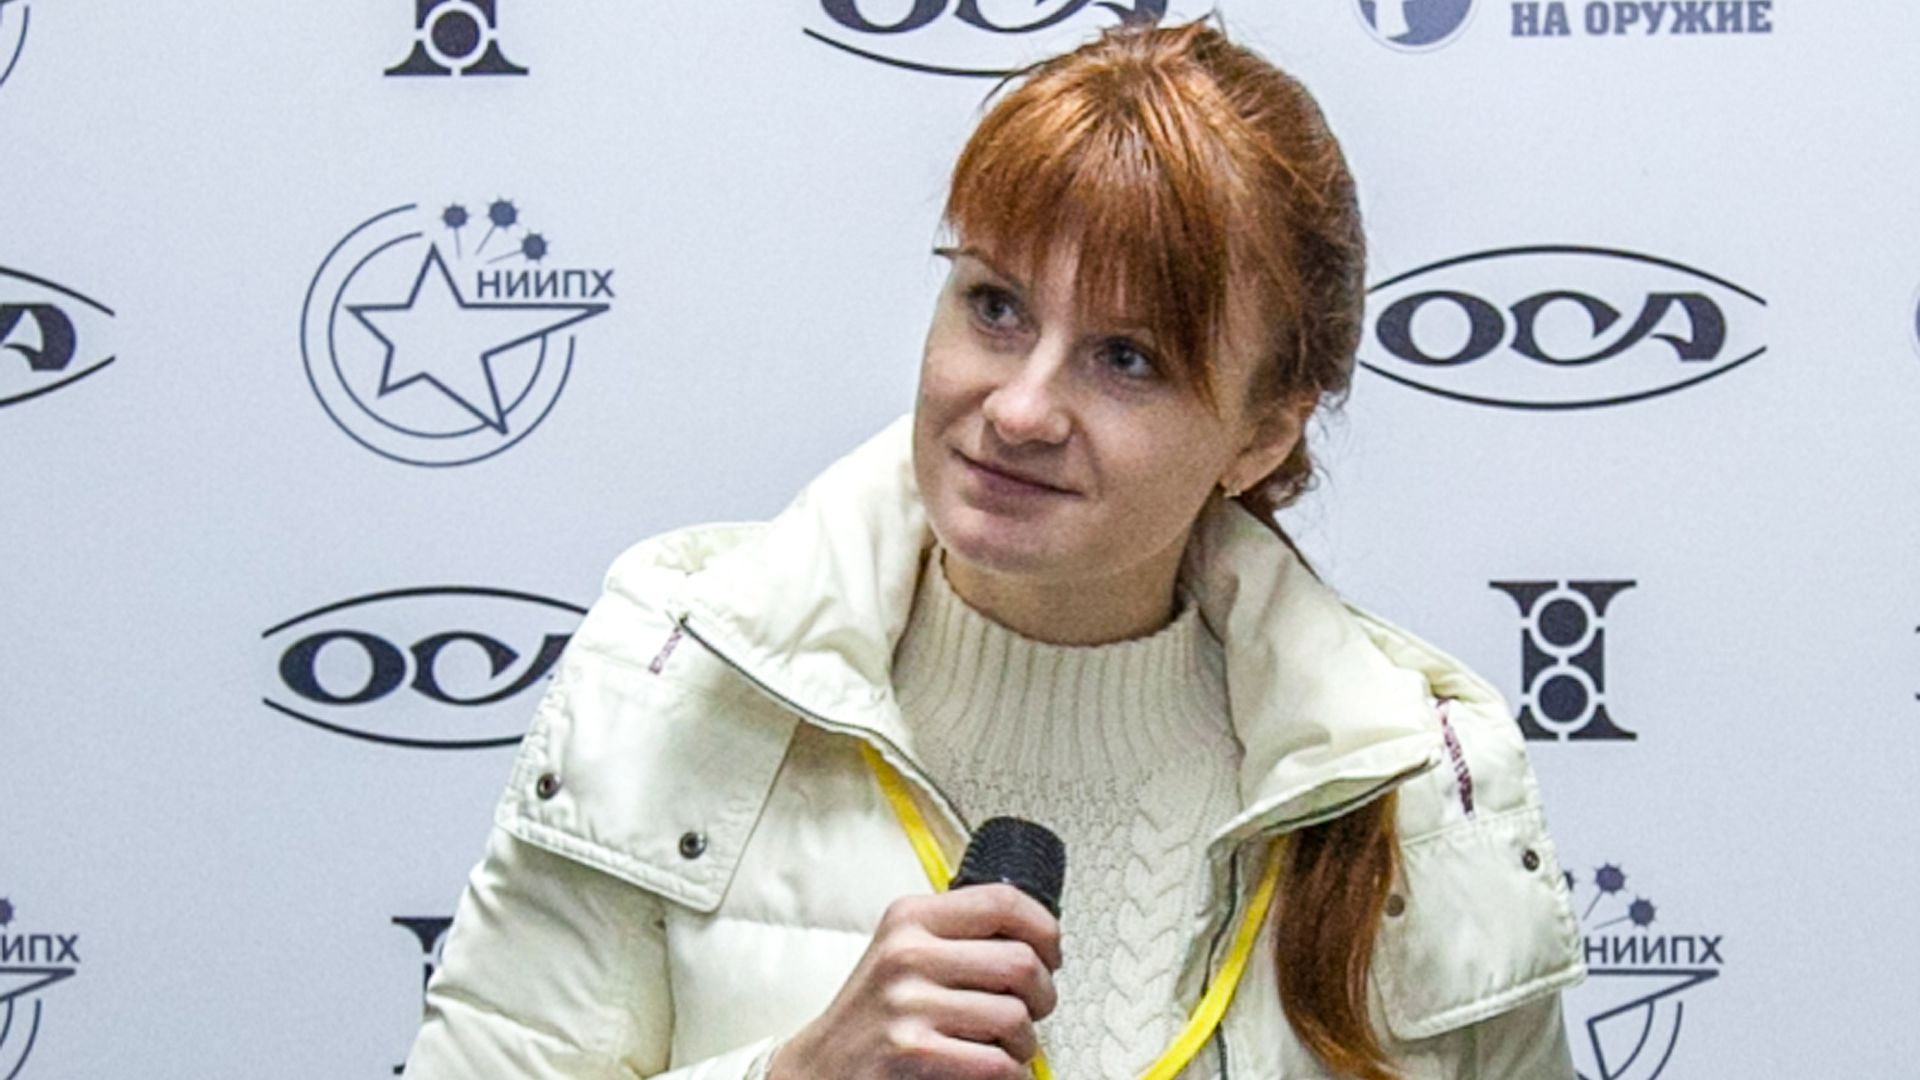 In this image, Maria Butina speaks into a microphone.